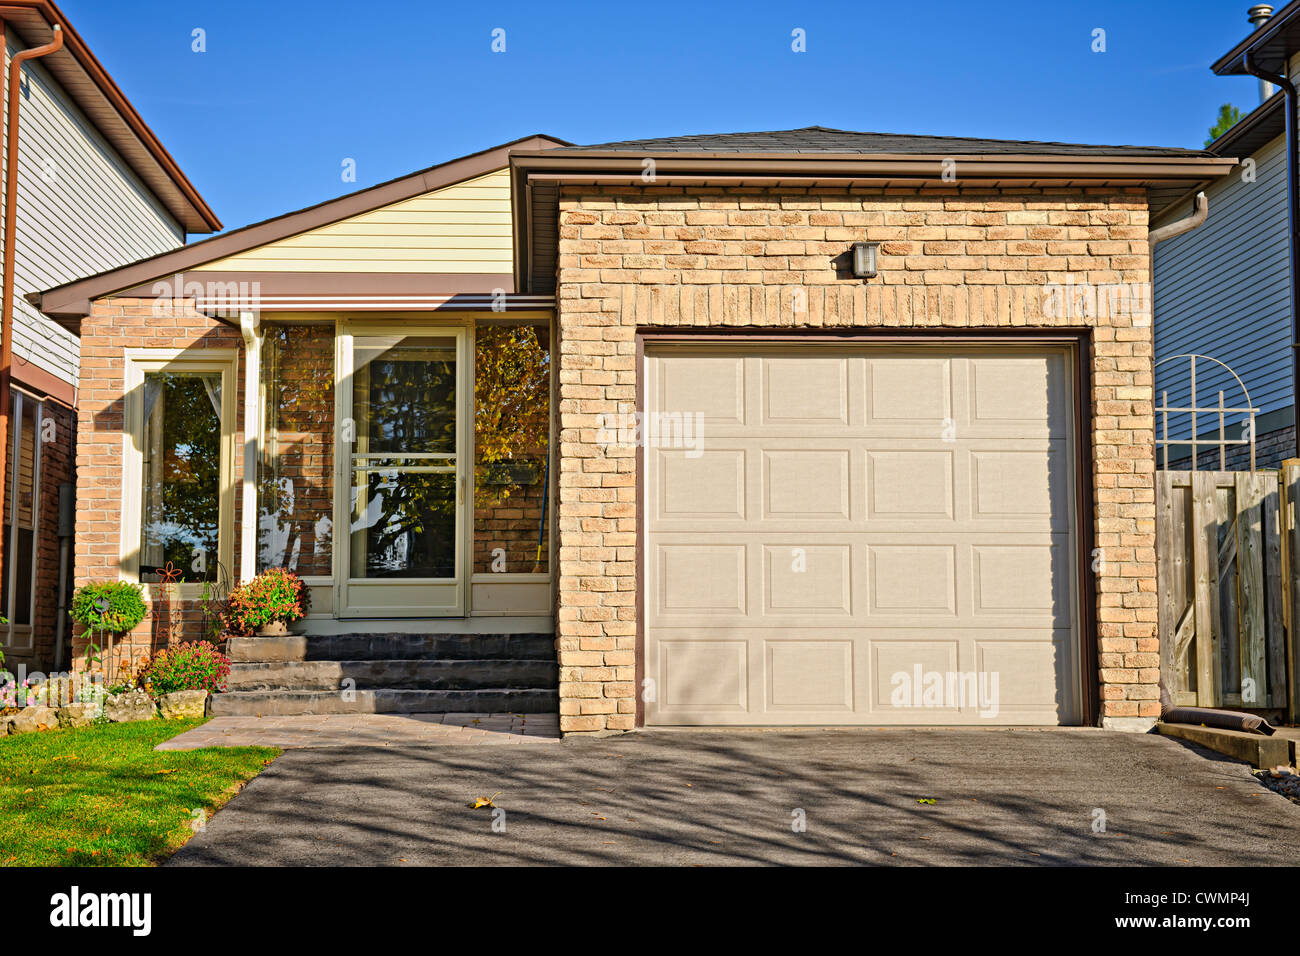 Suburban small bungalow house with single garage - Stock Image